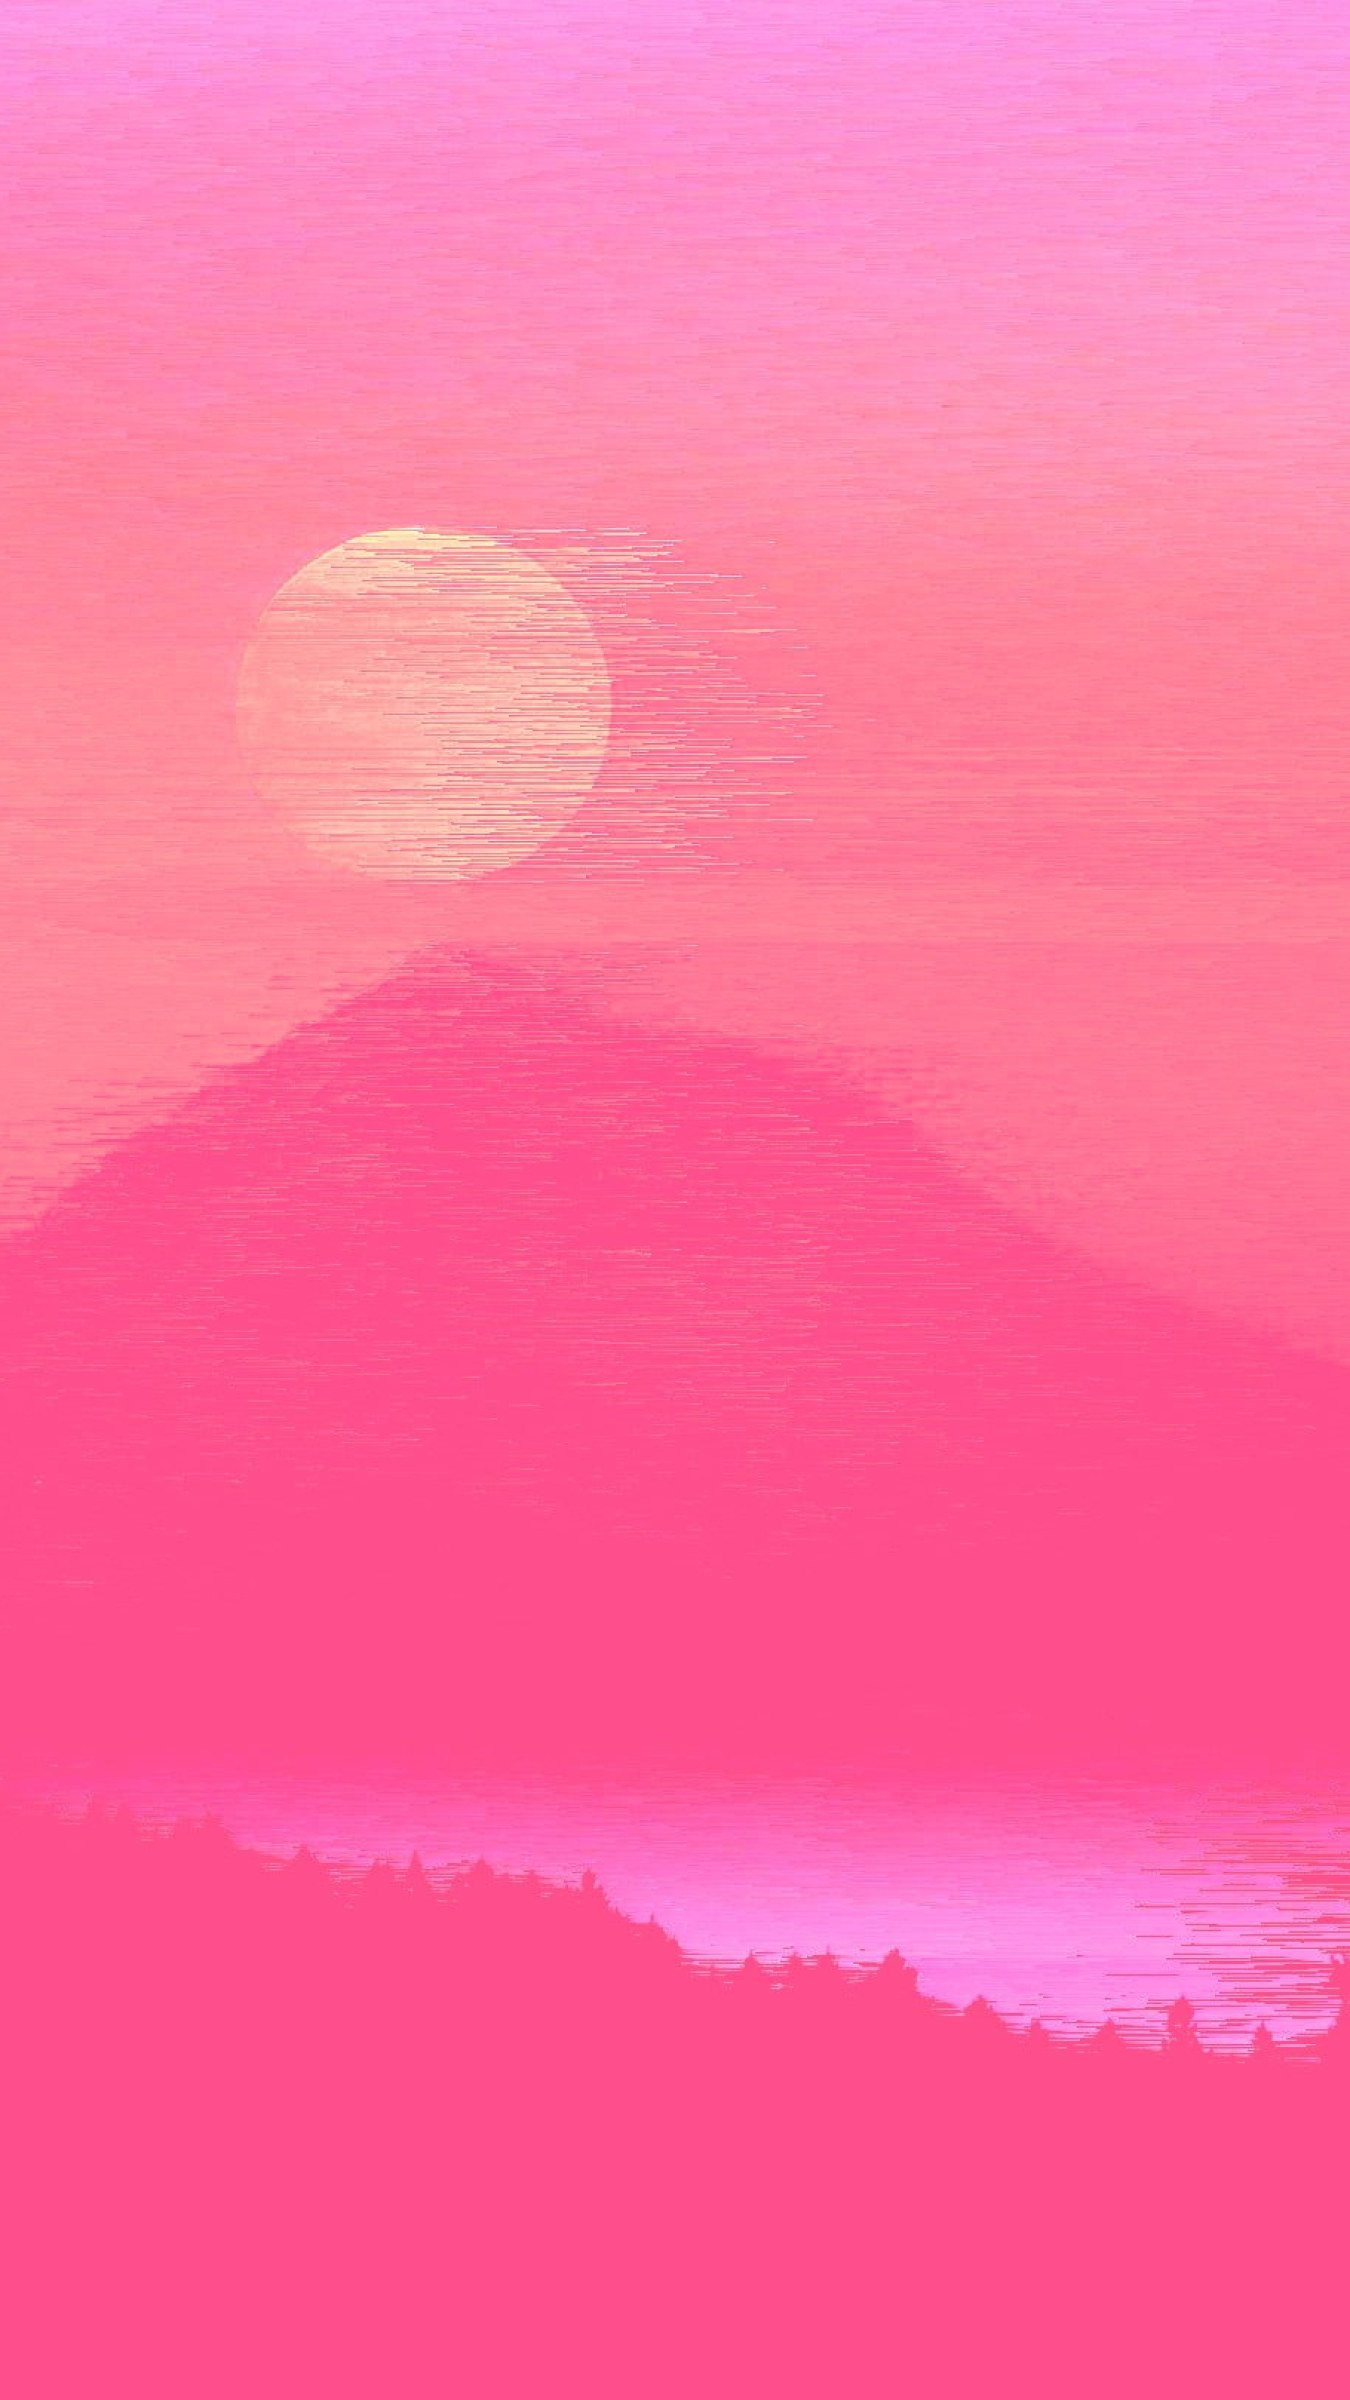 Aesthetic Wallpaper • Neon aesthetic pink color colored ...